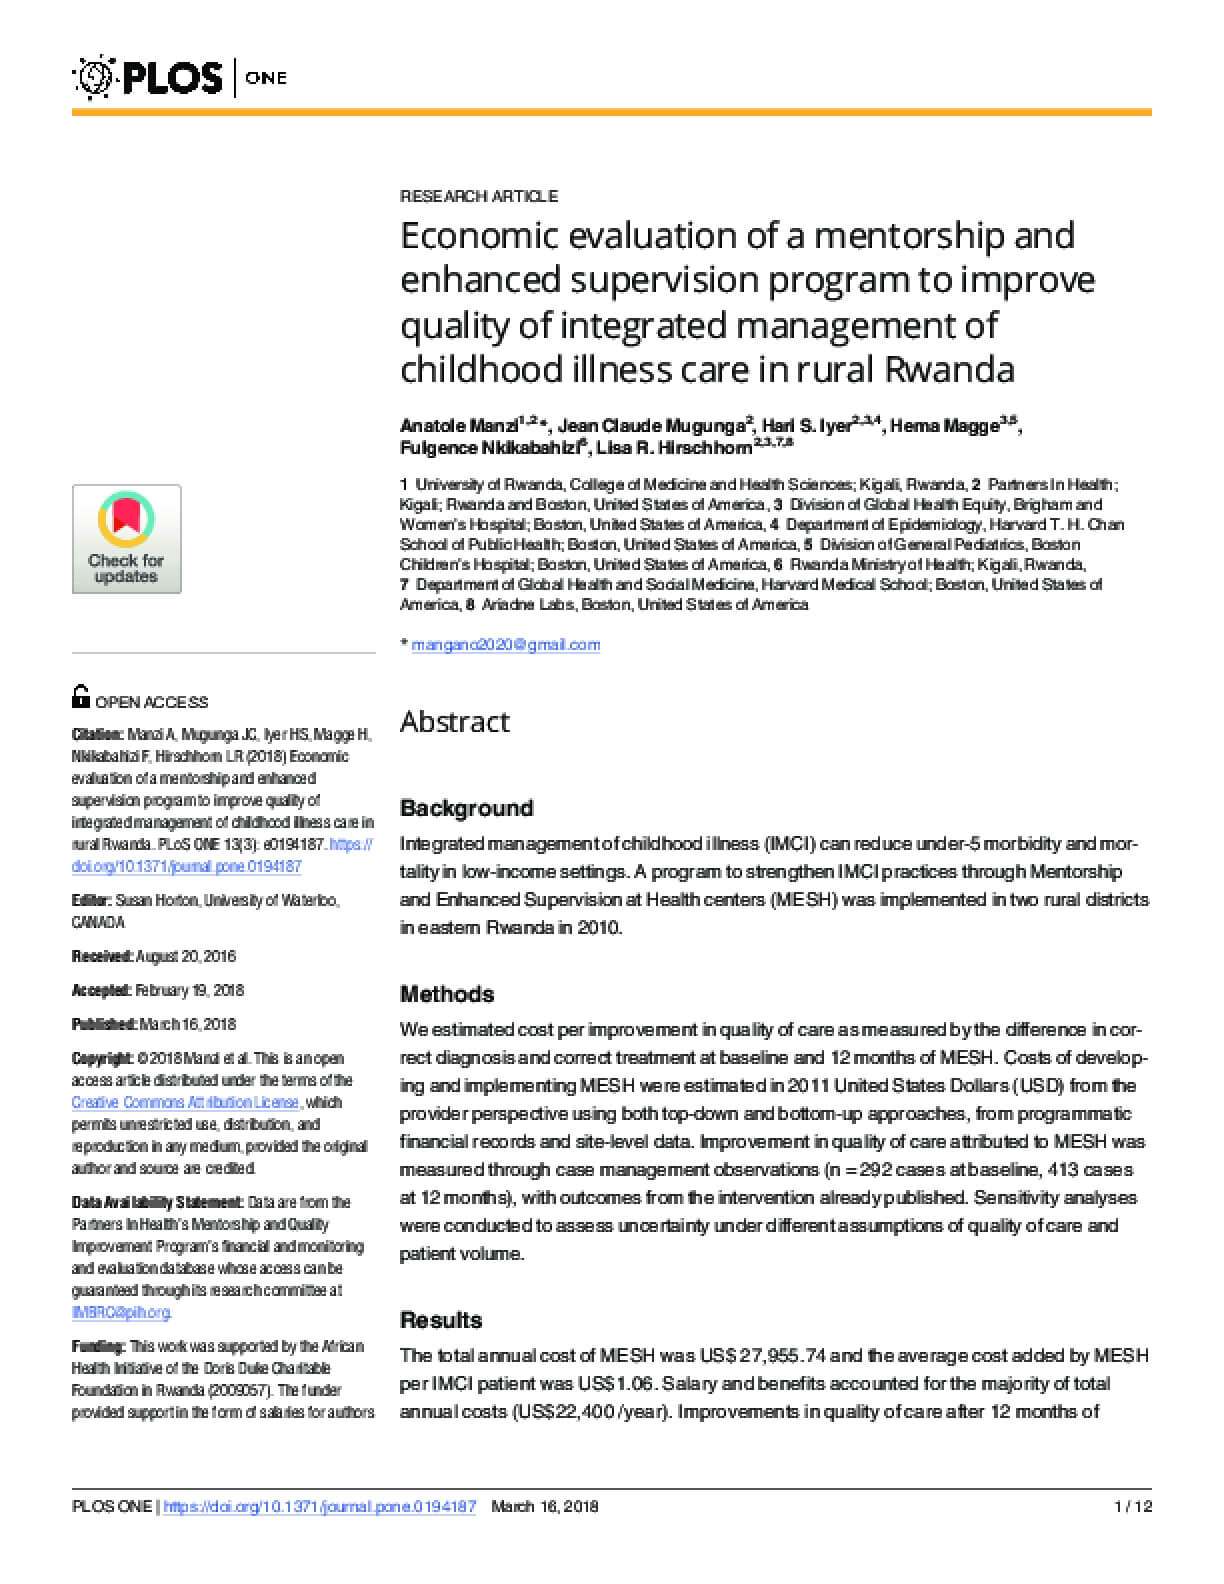 Economic evaluation of a Mentorship and Enhanced Supervision Program to Improve Quality of Integrated Management of Childhood Illness Care in Rural Rwanda